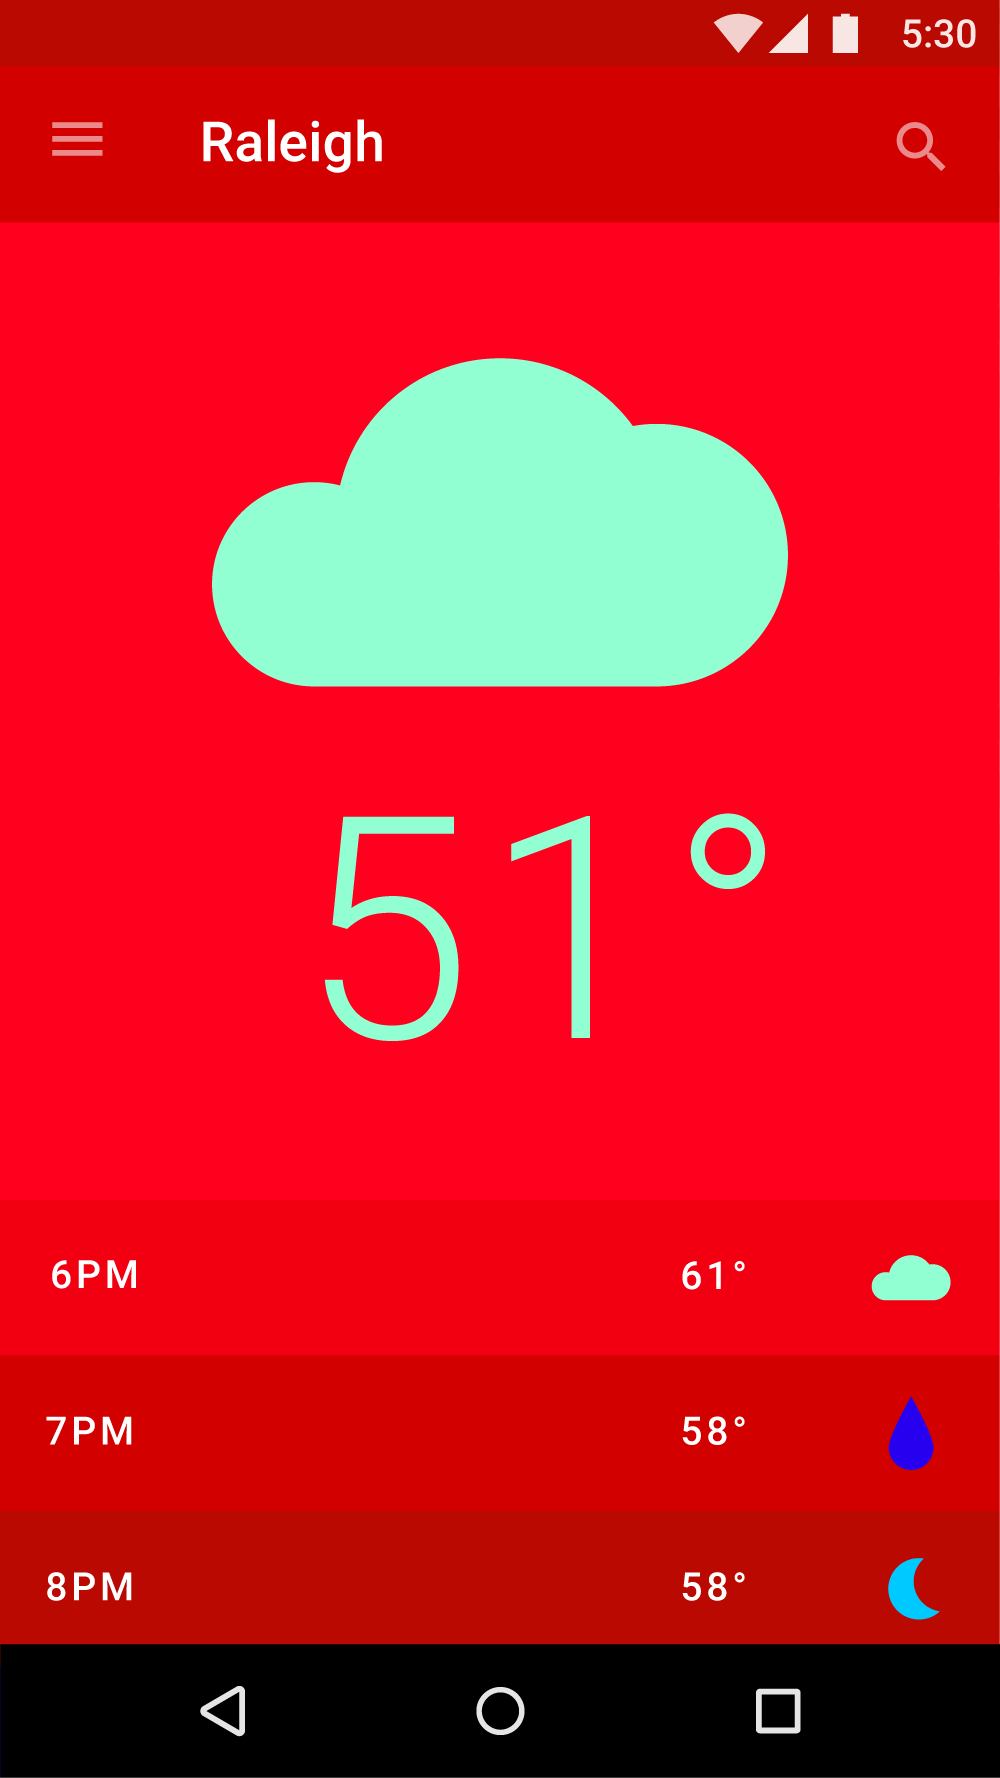 In This UI Red Signifies The Time Of Day And Green Represents Foggy Weather